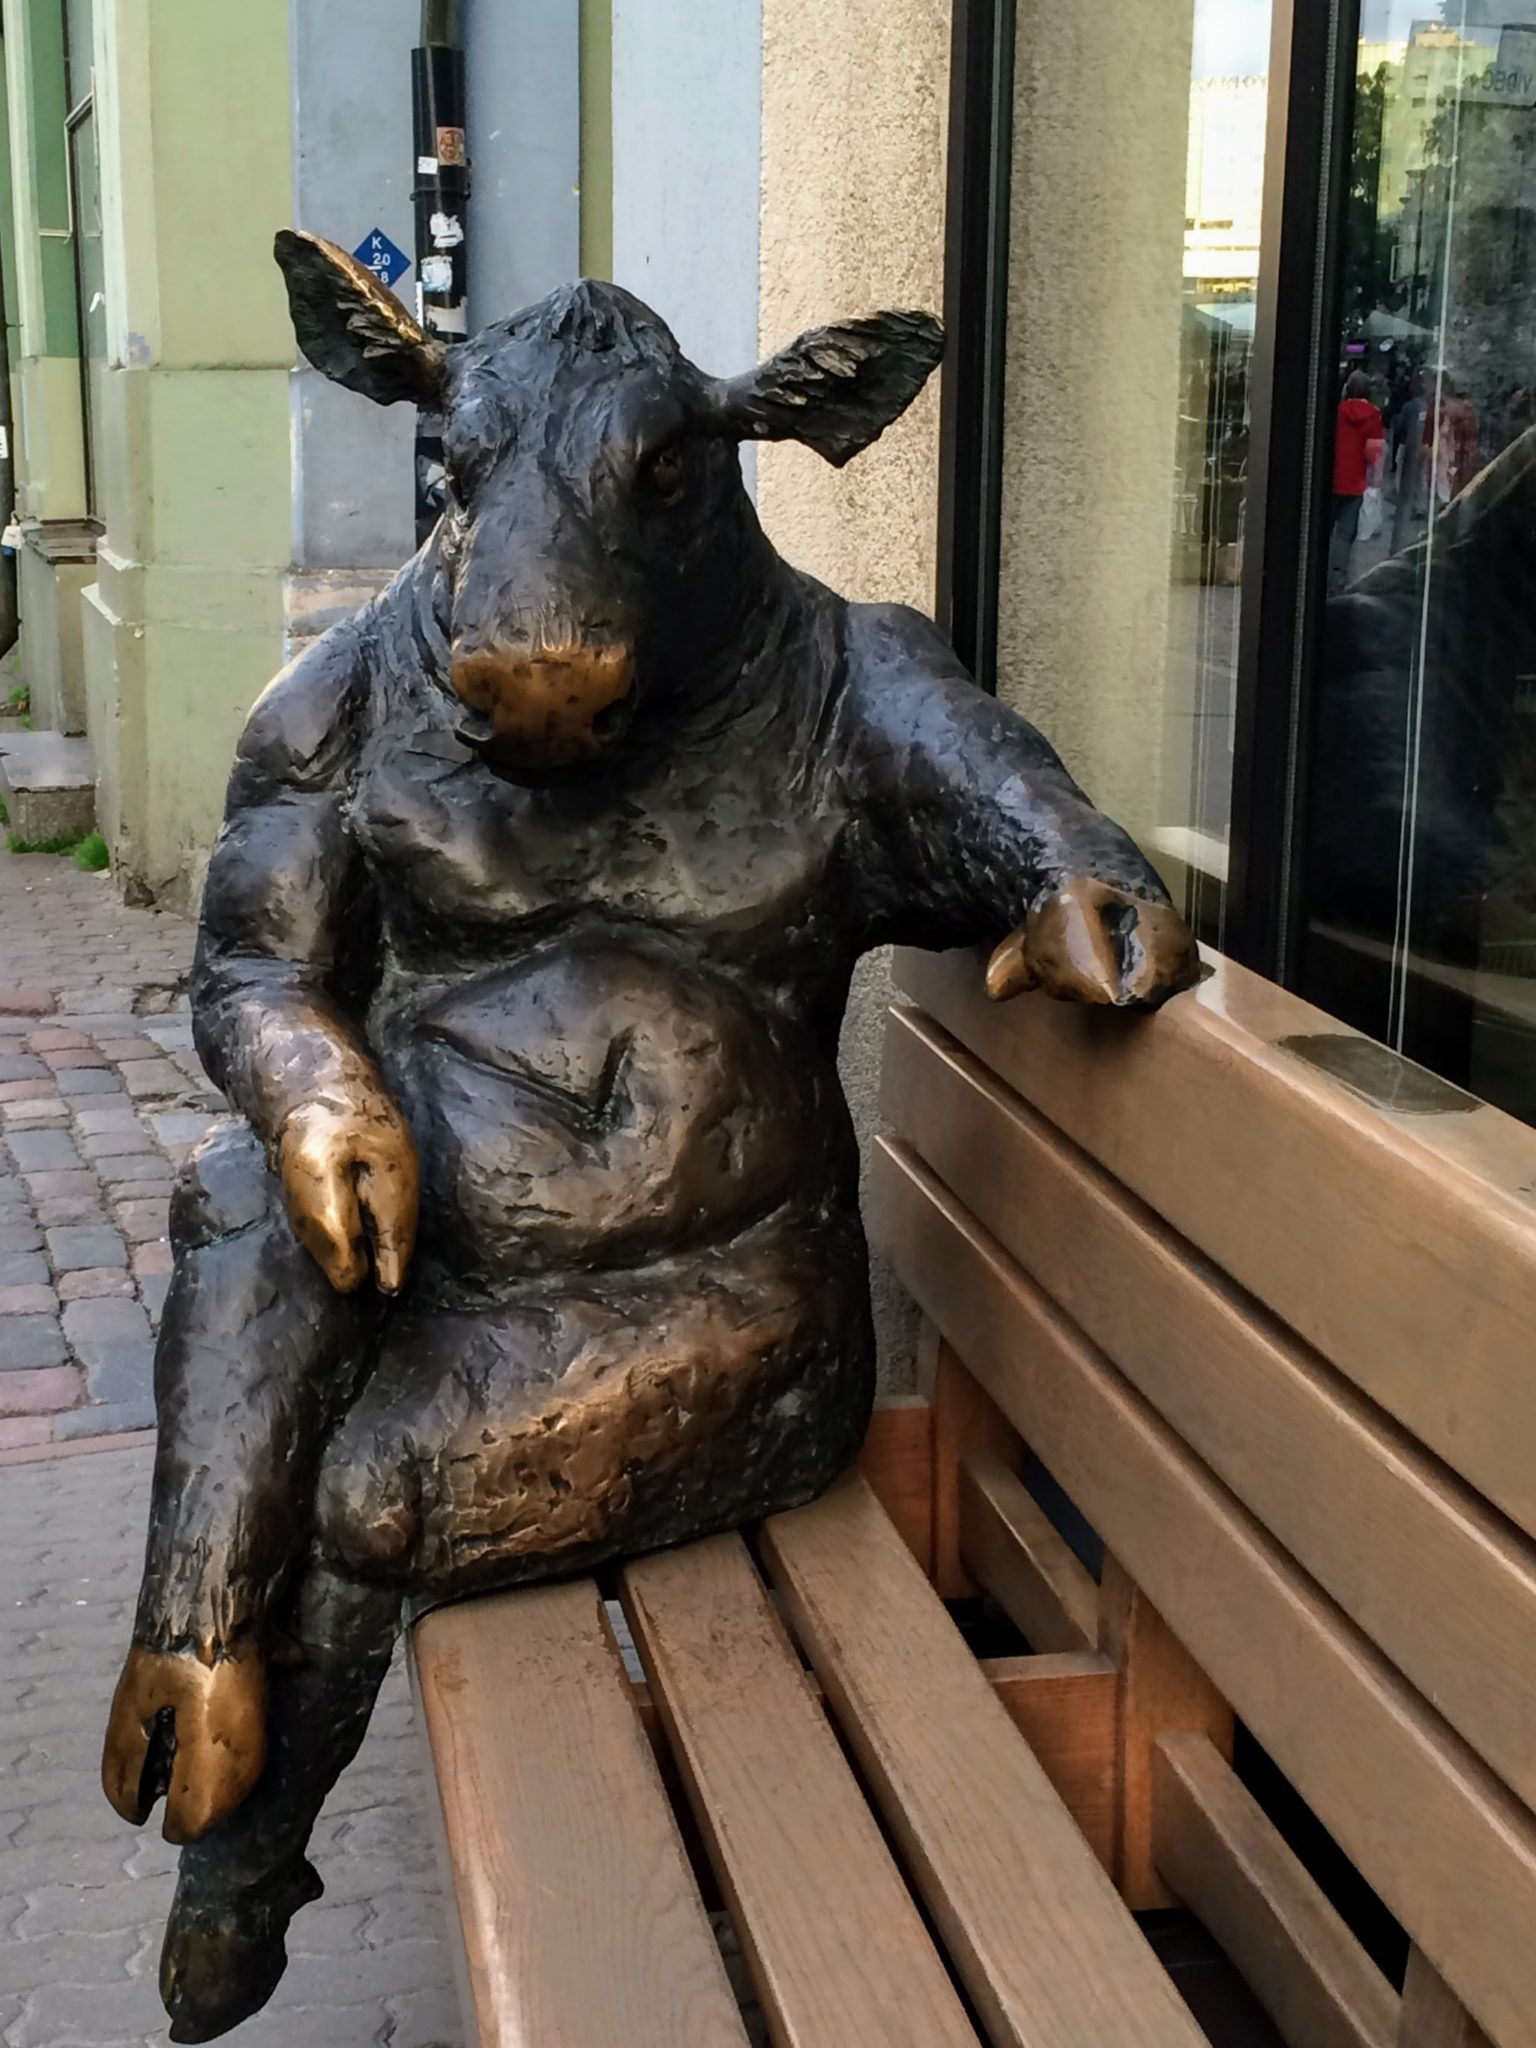 Bronze statue of a cow seated on a bench Tallinn, Estonia